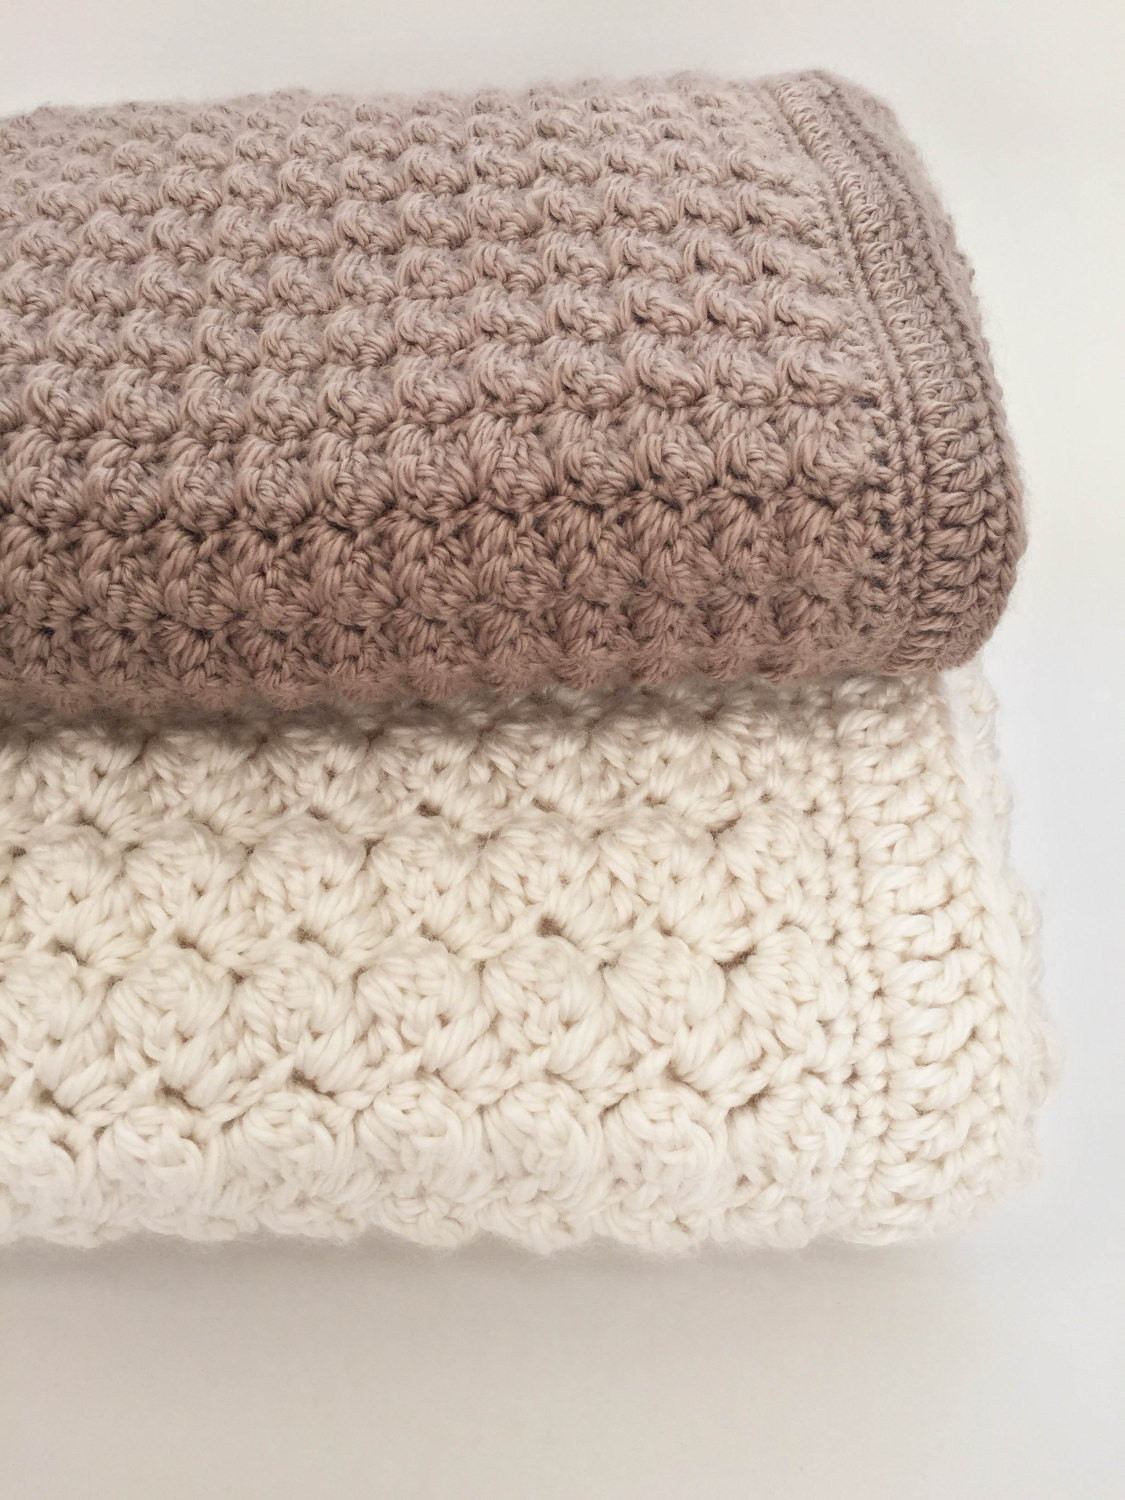 Chunky Yarn Crochet Patterns Elegant Crochet Baby Blanket Pattern Chunky Crochet Baby Blanket Of Amazing 46 Photos Chunky Yarn Crochet Patterns